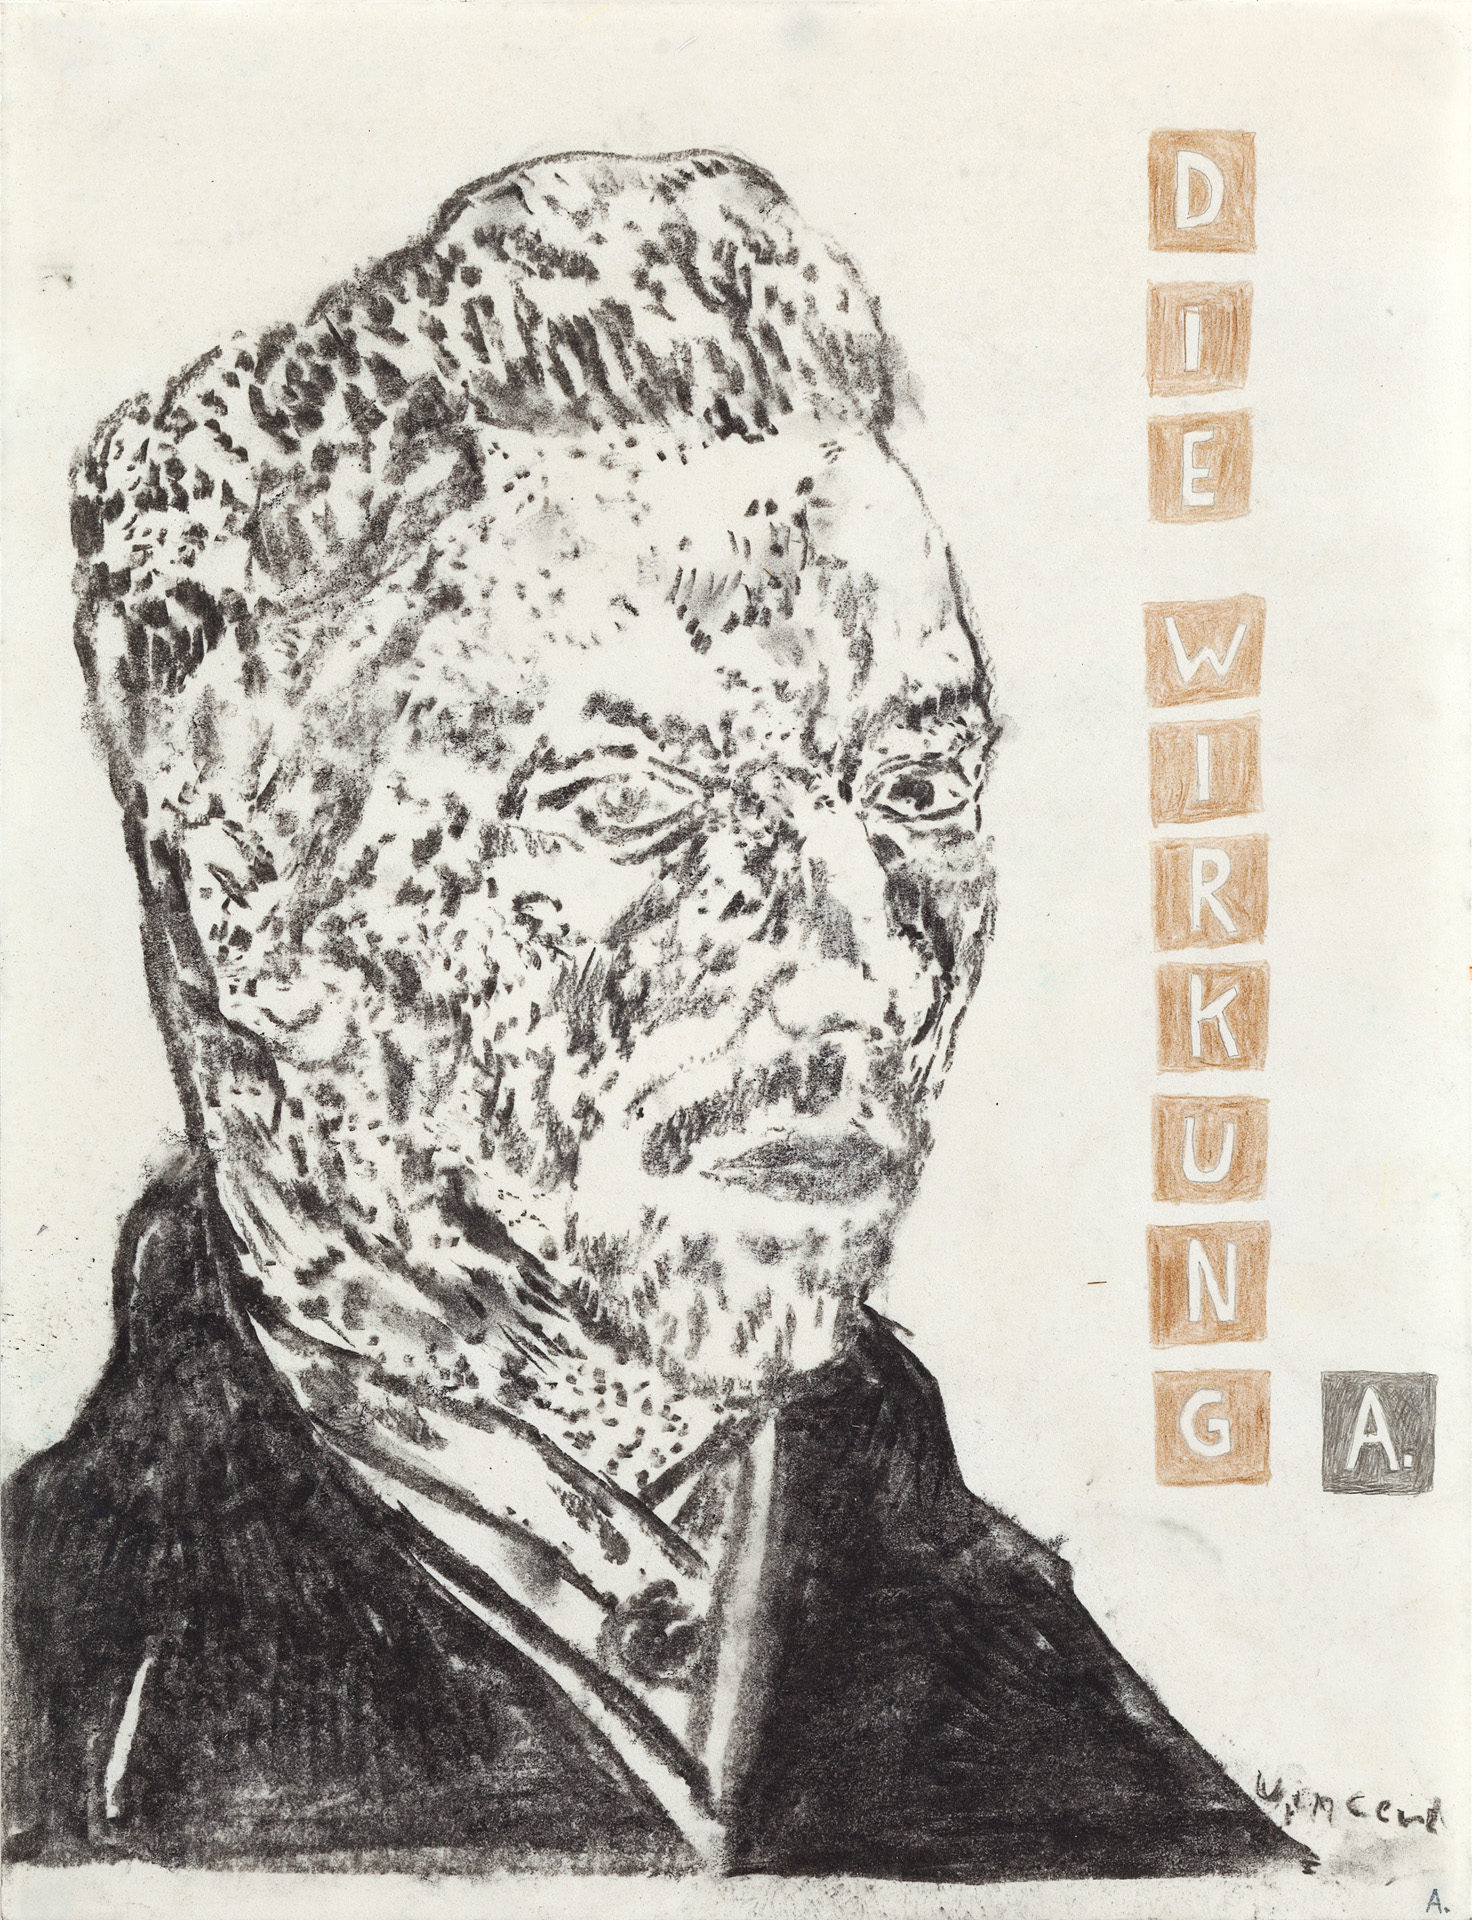 Martin Assig – St. Paul #605 –Die Wirkung, 2014, charcoal, wax on paper, 39,3 x 30,5 cm